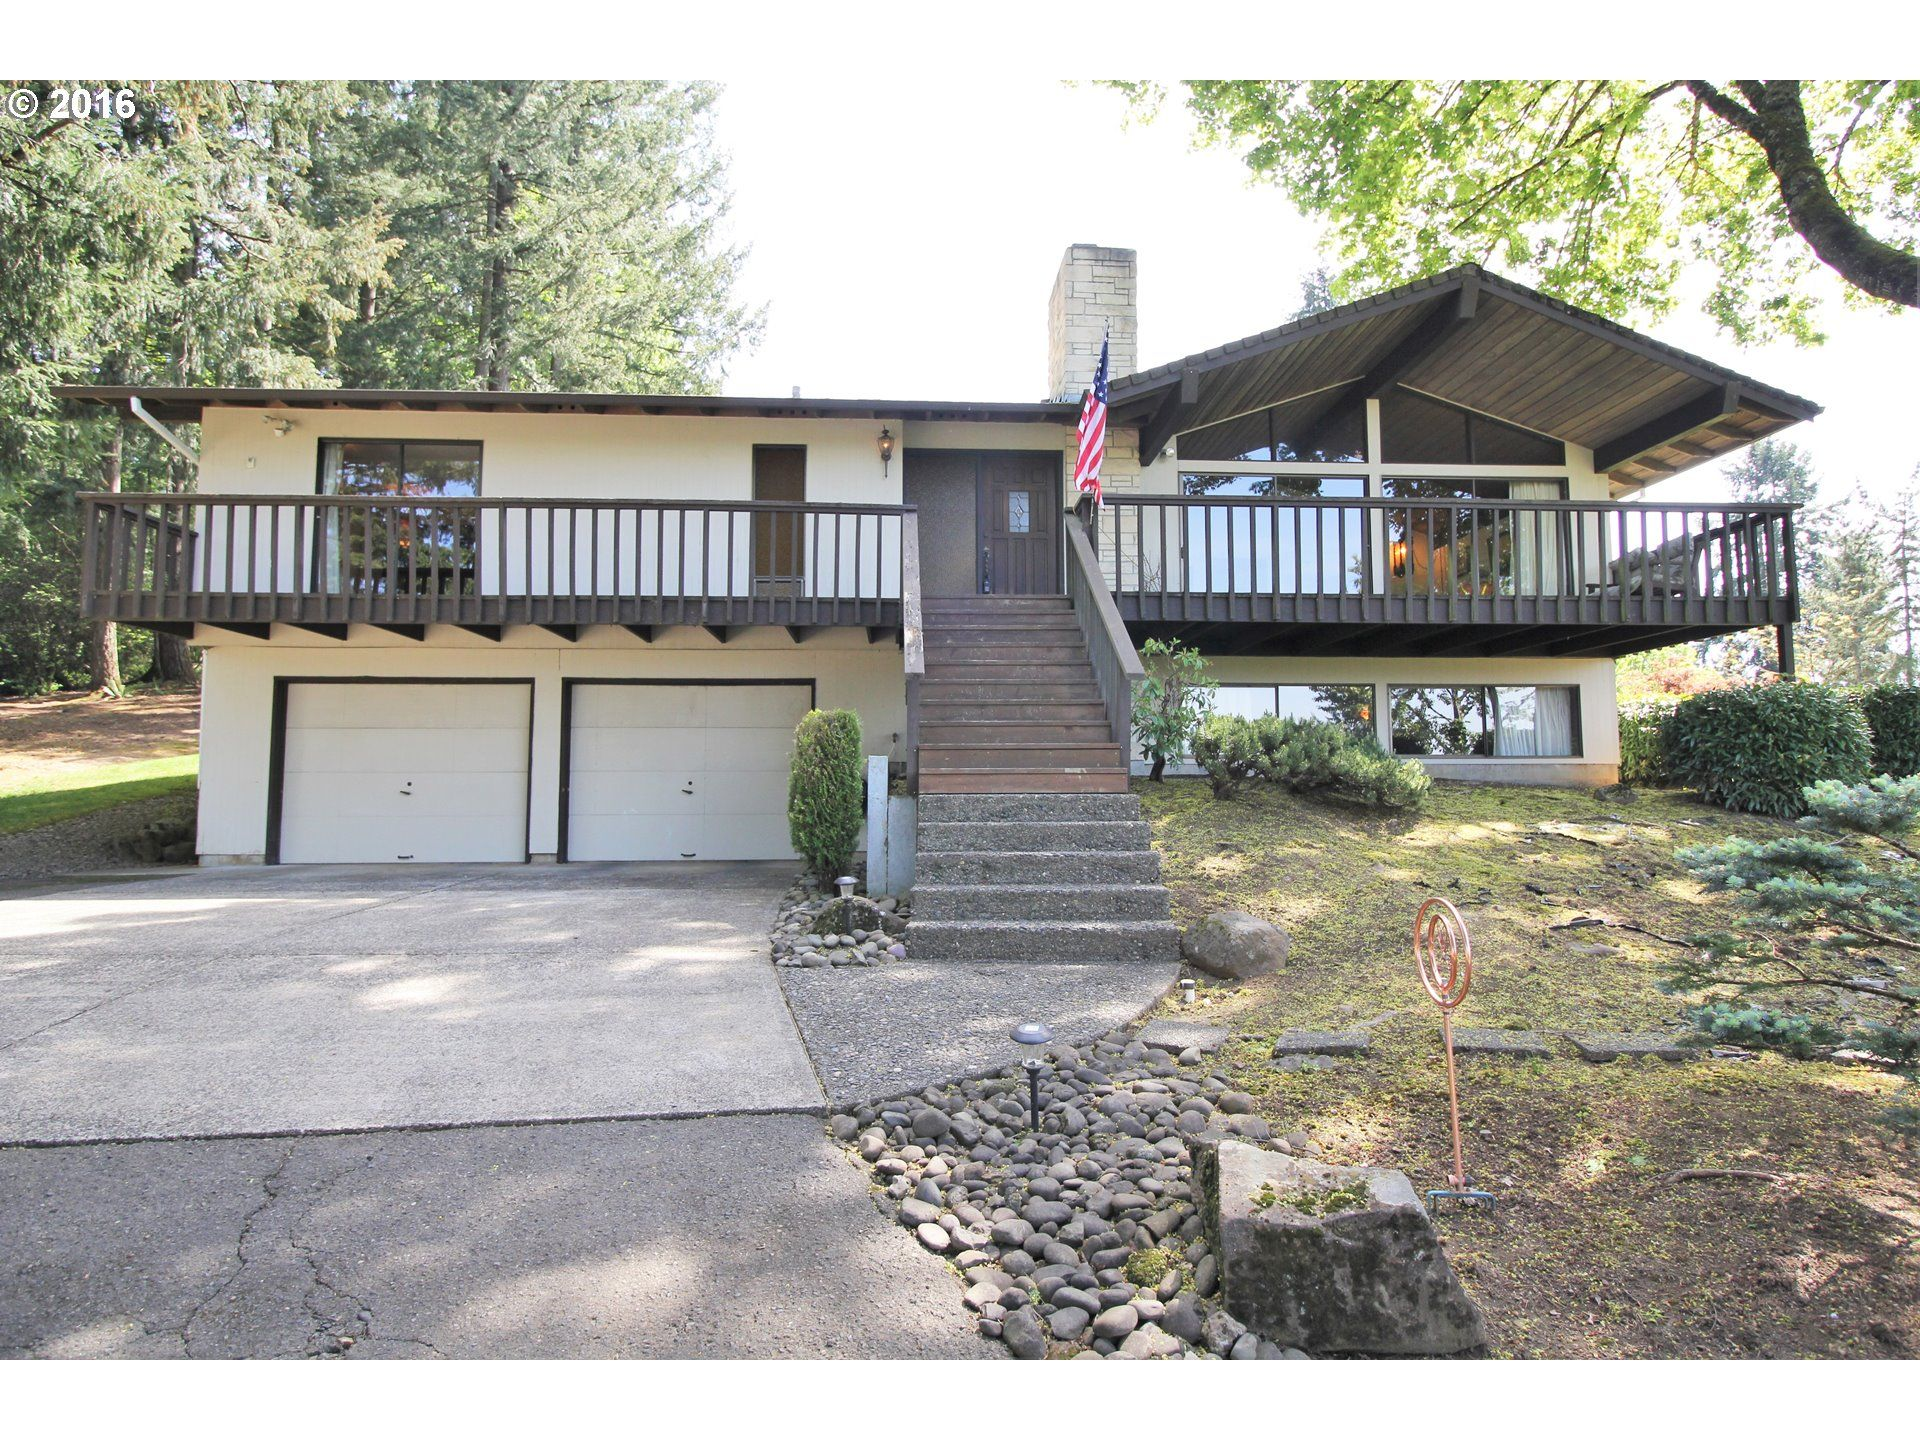 Period-Perfect Pick of the Week:  1969 Damascus (SE Countryside) Mid-Century Day Ranch with Wings! Time-Capsule home with original stone-work, marbled mirror tiled entry, kitschy swag lighting, shag carpeting, basement bar, original baths and kitchen, WOW! 4 beds, 3 bath, 3034 Sqft, 1.24 acres, oversized 2 car garage, $499,999. Listing courtesy of Oregon First.   17505 SE SUNNYSIDE RD, Damascus, OR 97089